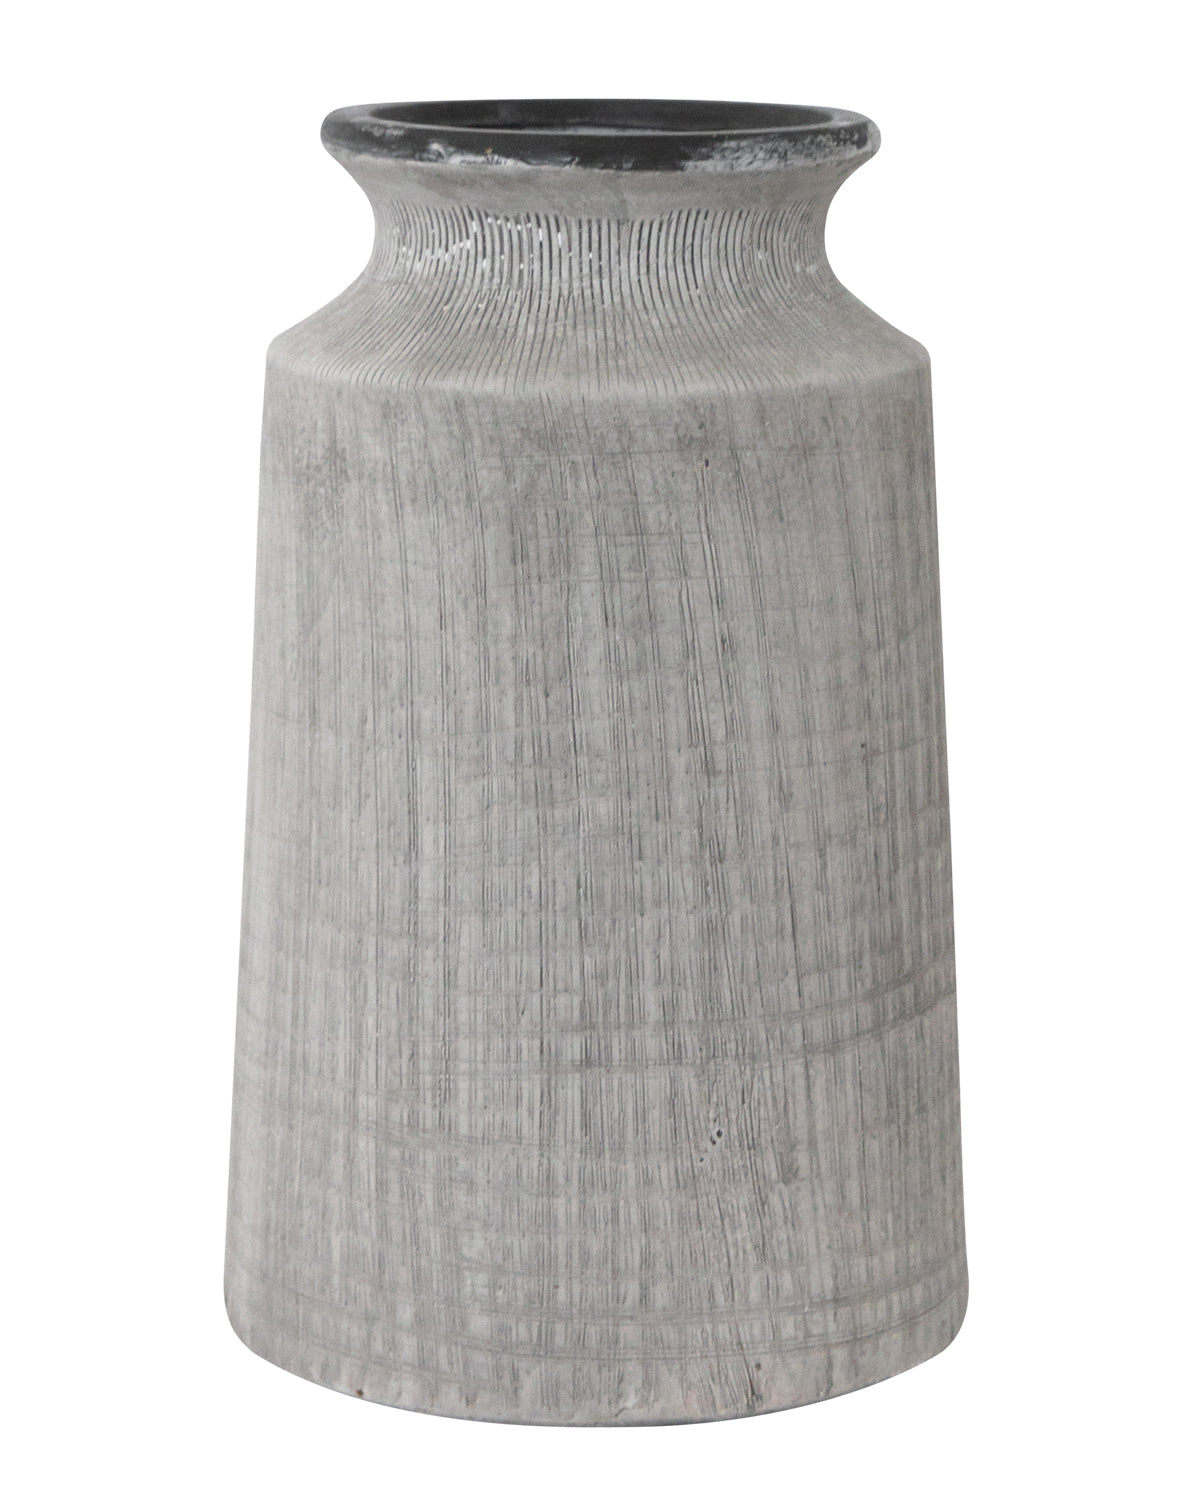 Washed Charcoal Flower Vase